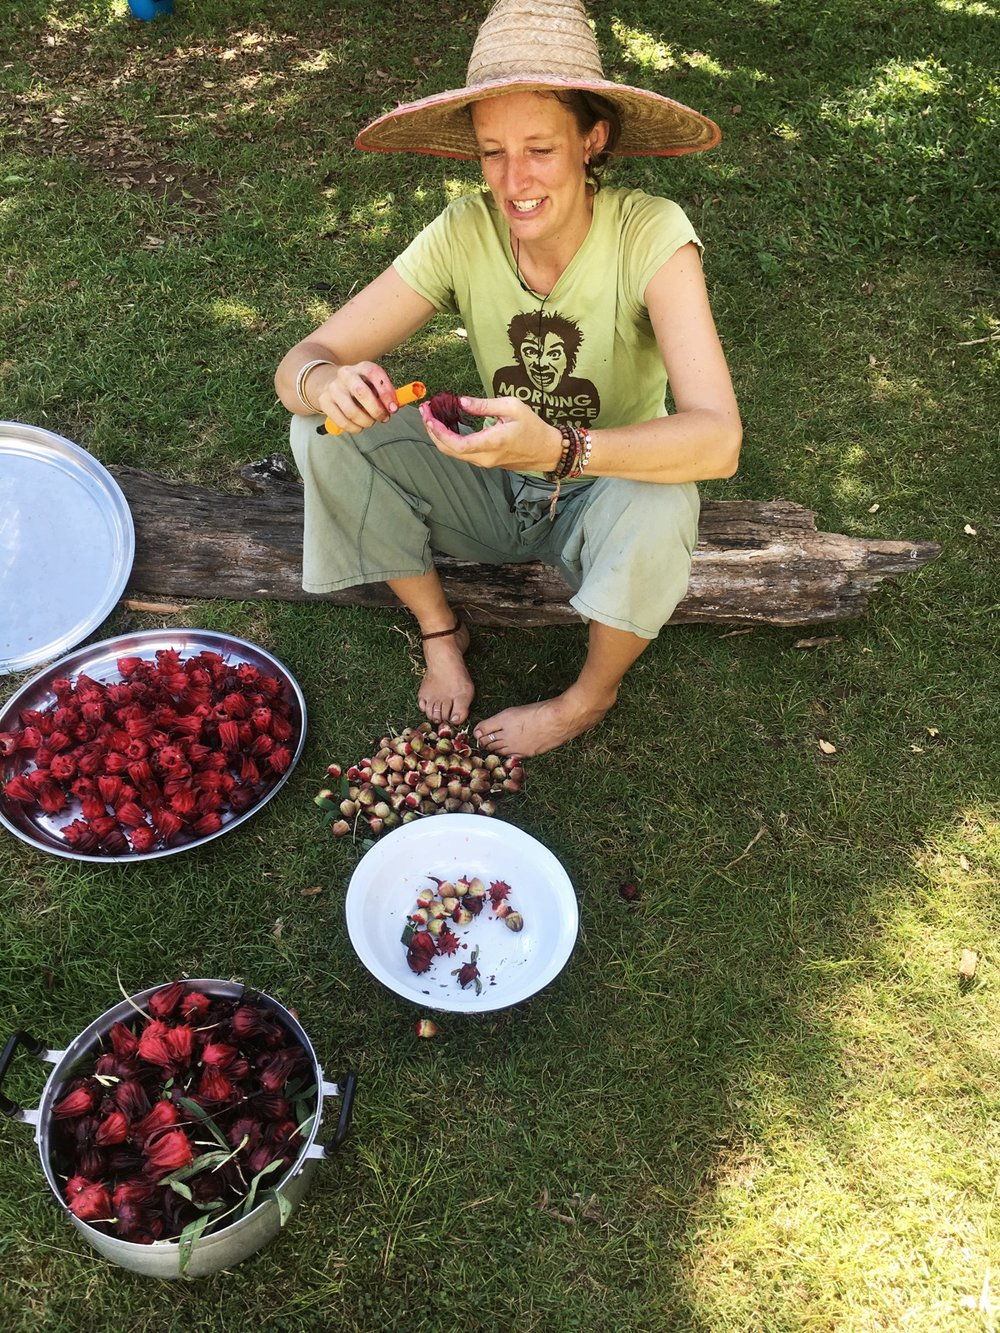 Ro in the garden harvesting miraculous fruit that came from tiny seeds.